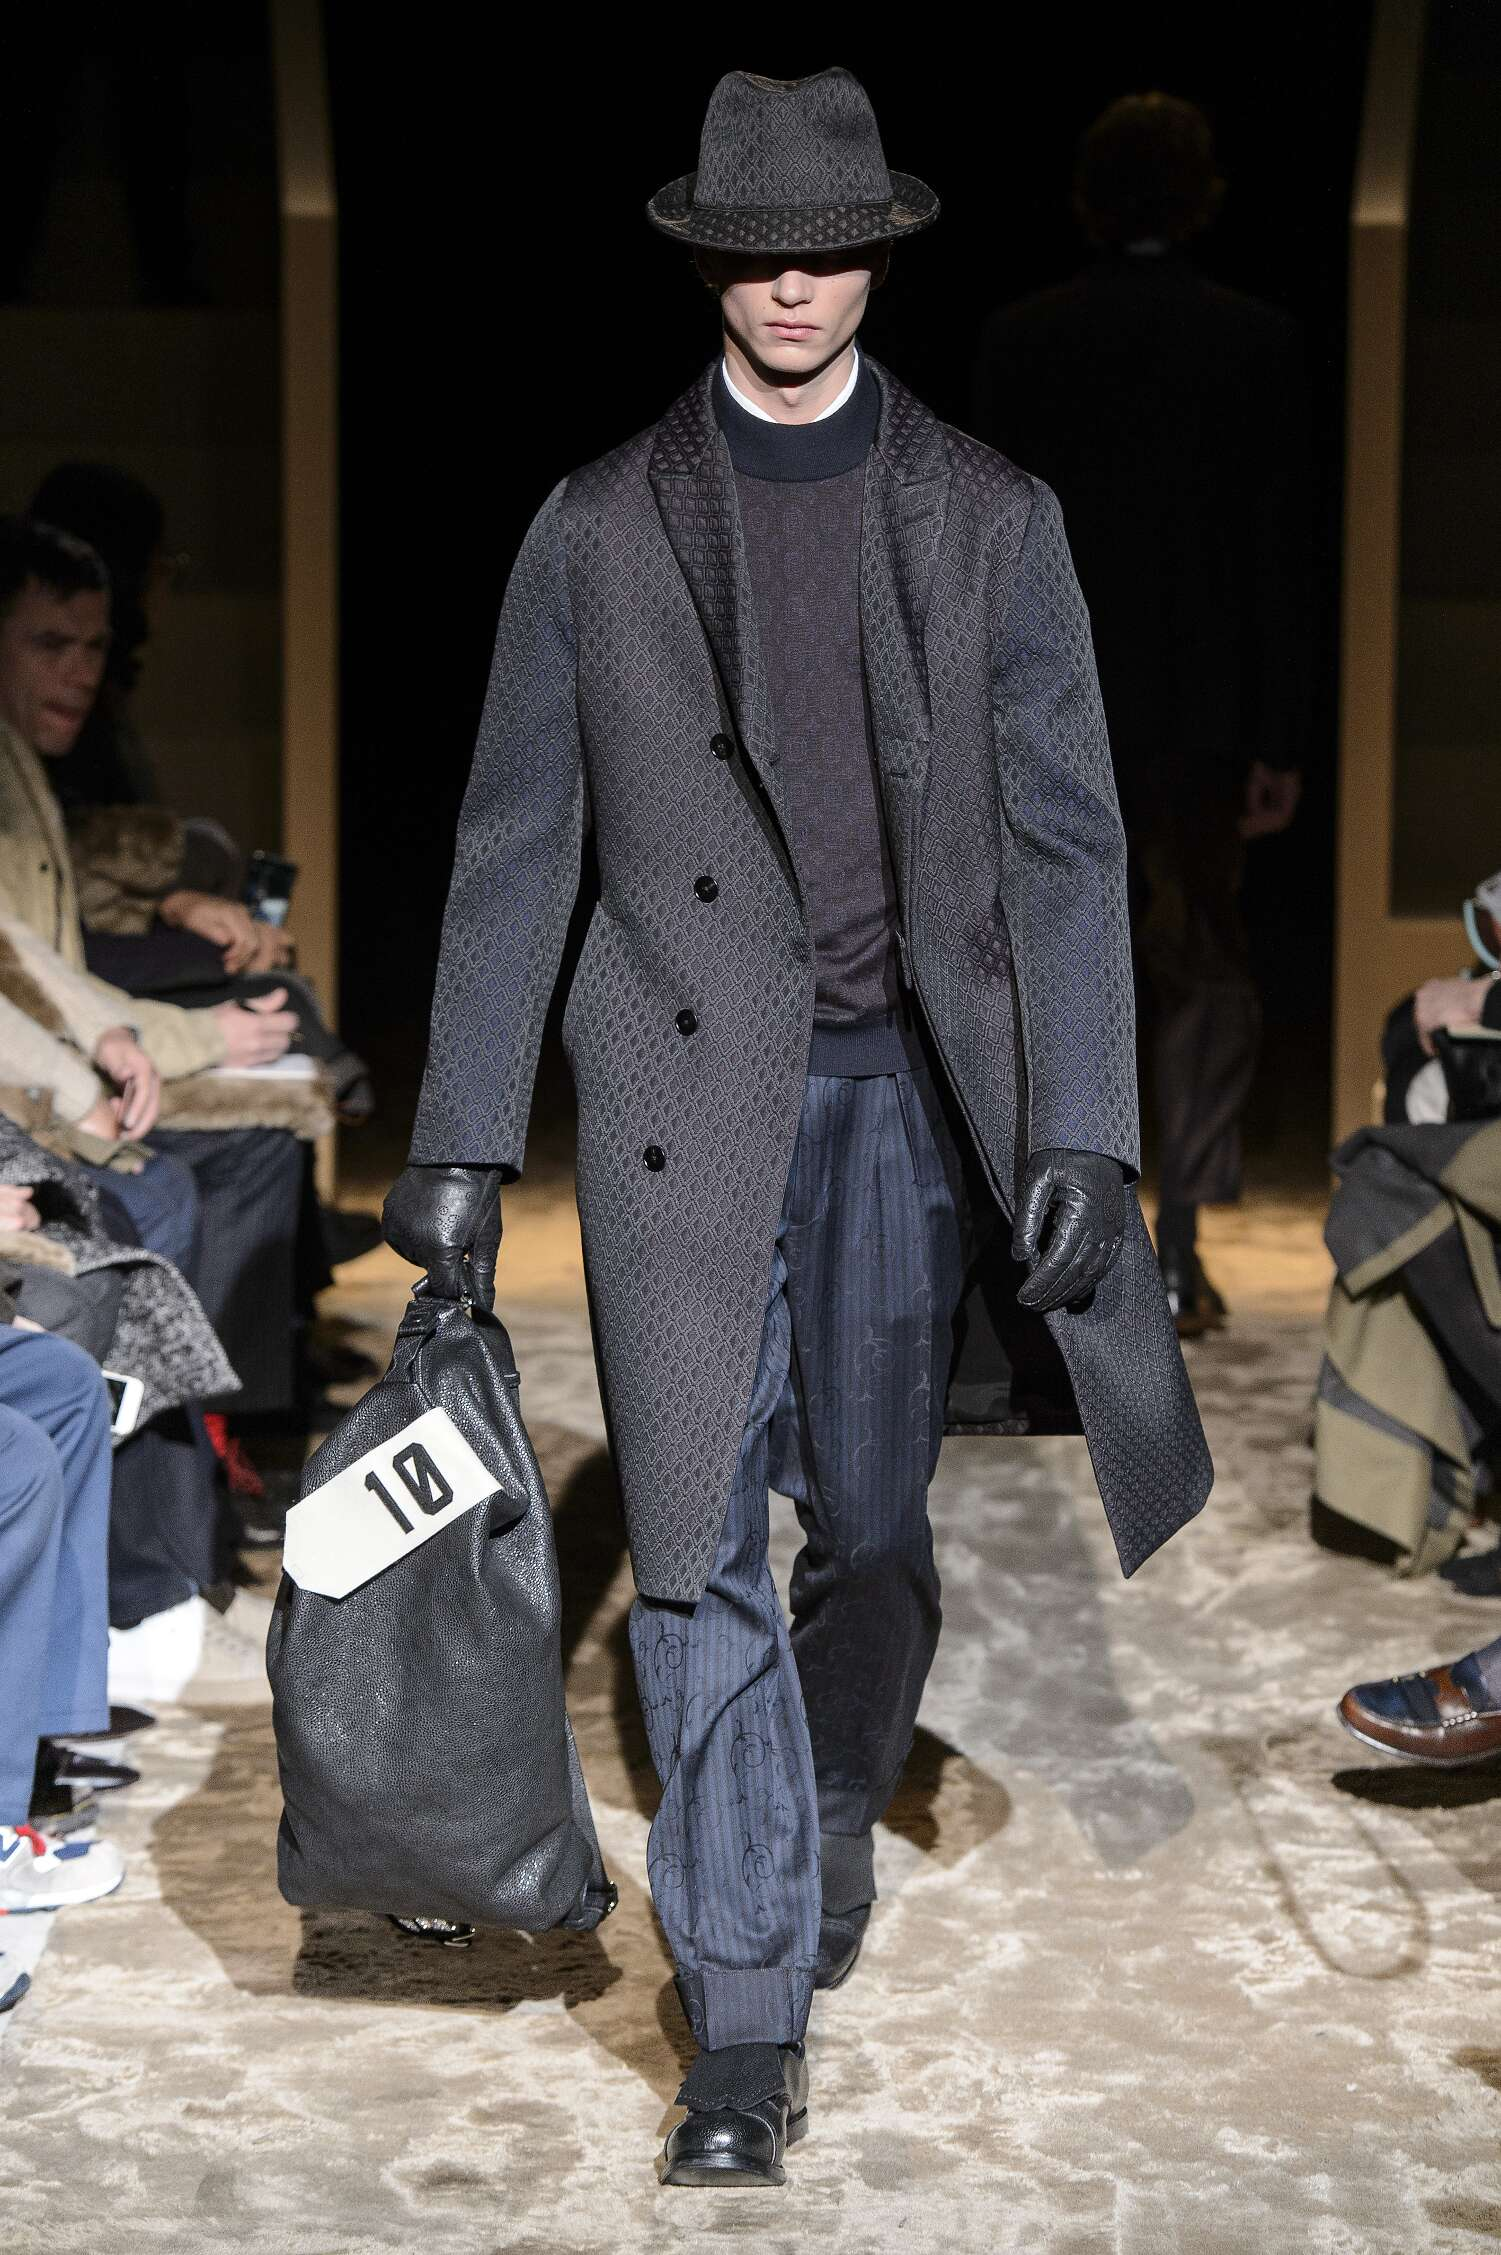 Ermenegildo Zegna Couture Fall Winter 2016 Mens Collection Milan Fashion Week